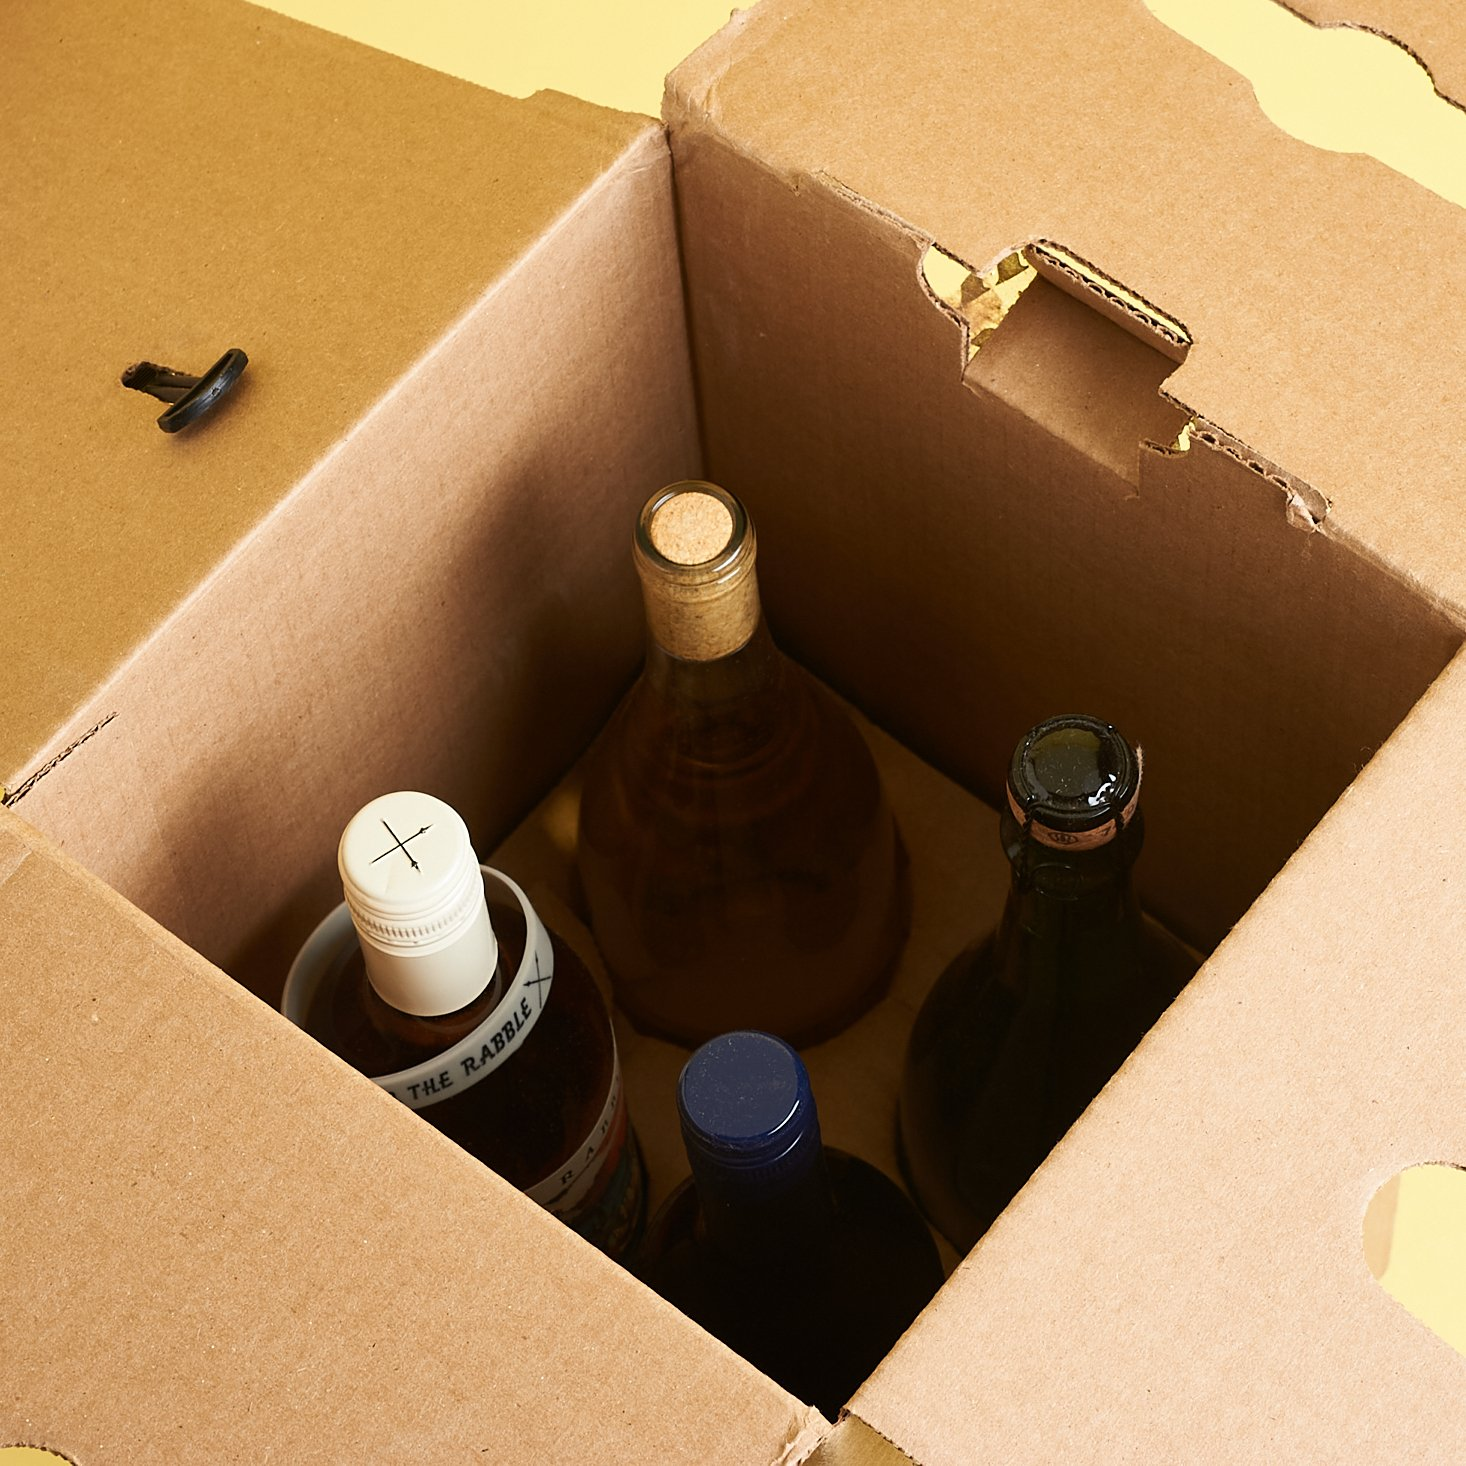 view of four upright bottles inside of the box